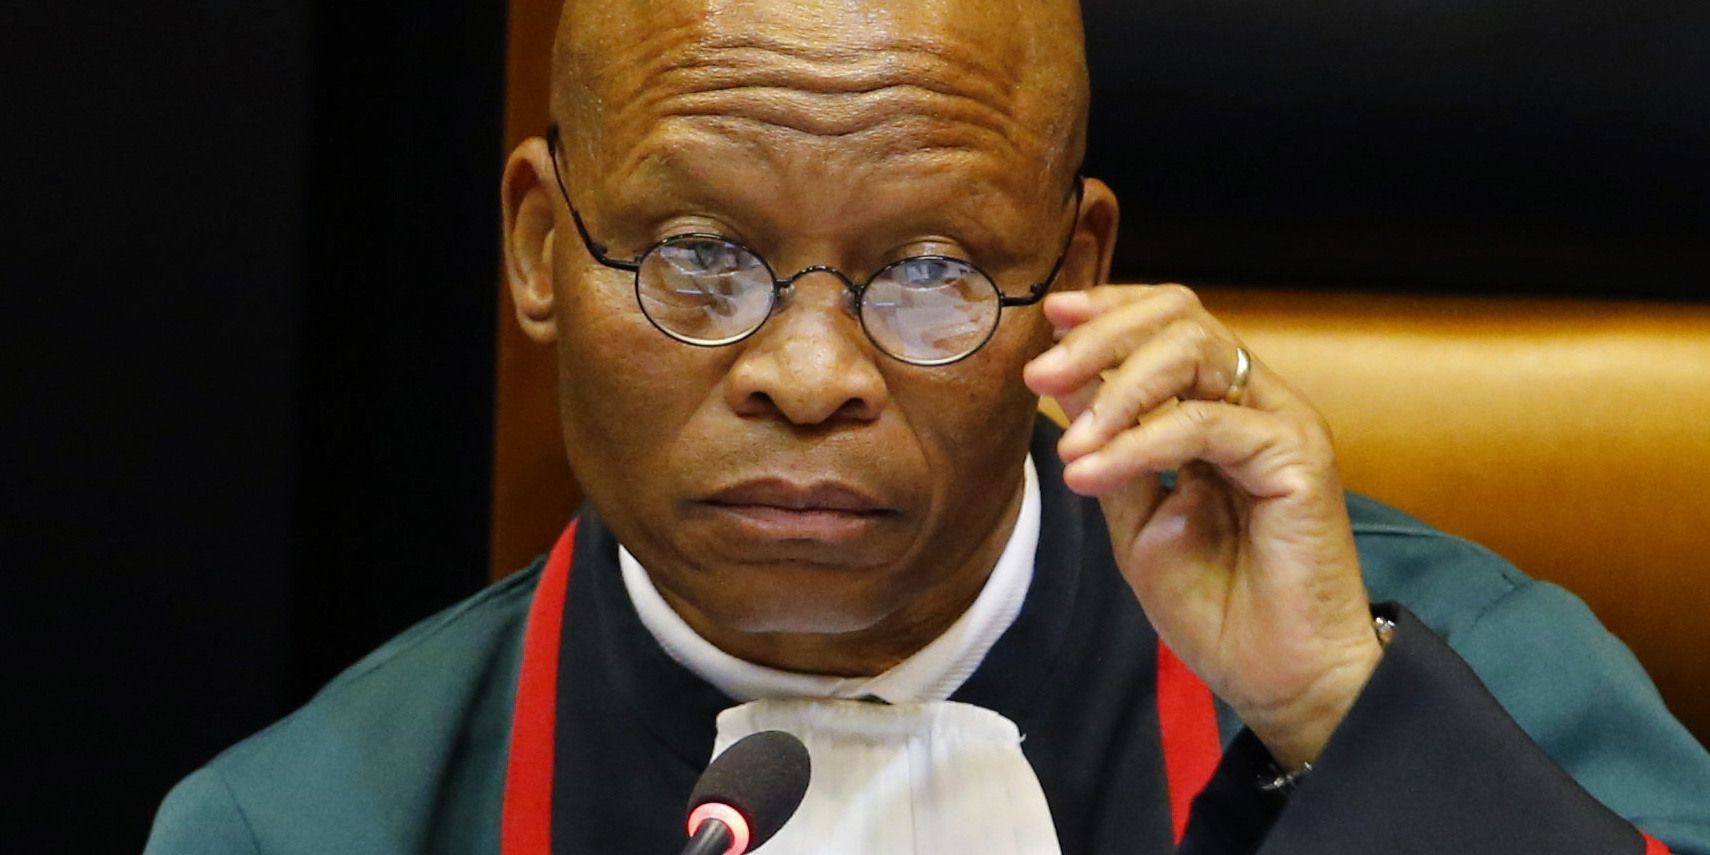 'Judges should not be muzzled': Chief Justice responds to complaint on comments about Israel - Daily Maverick